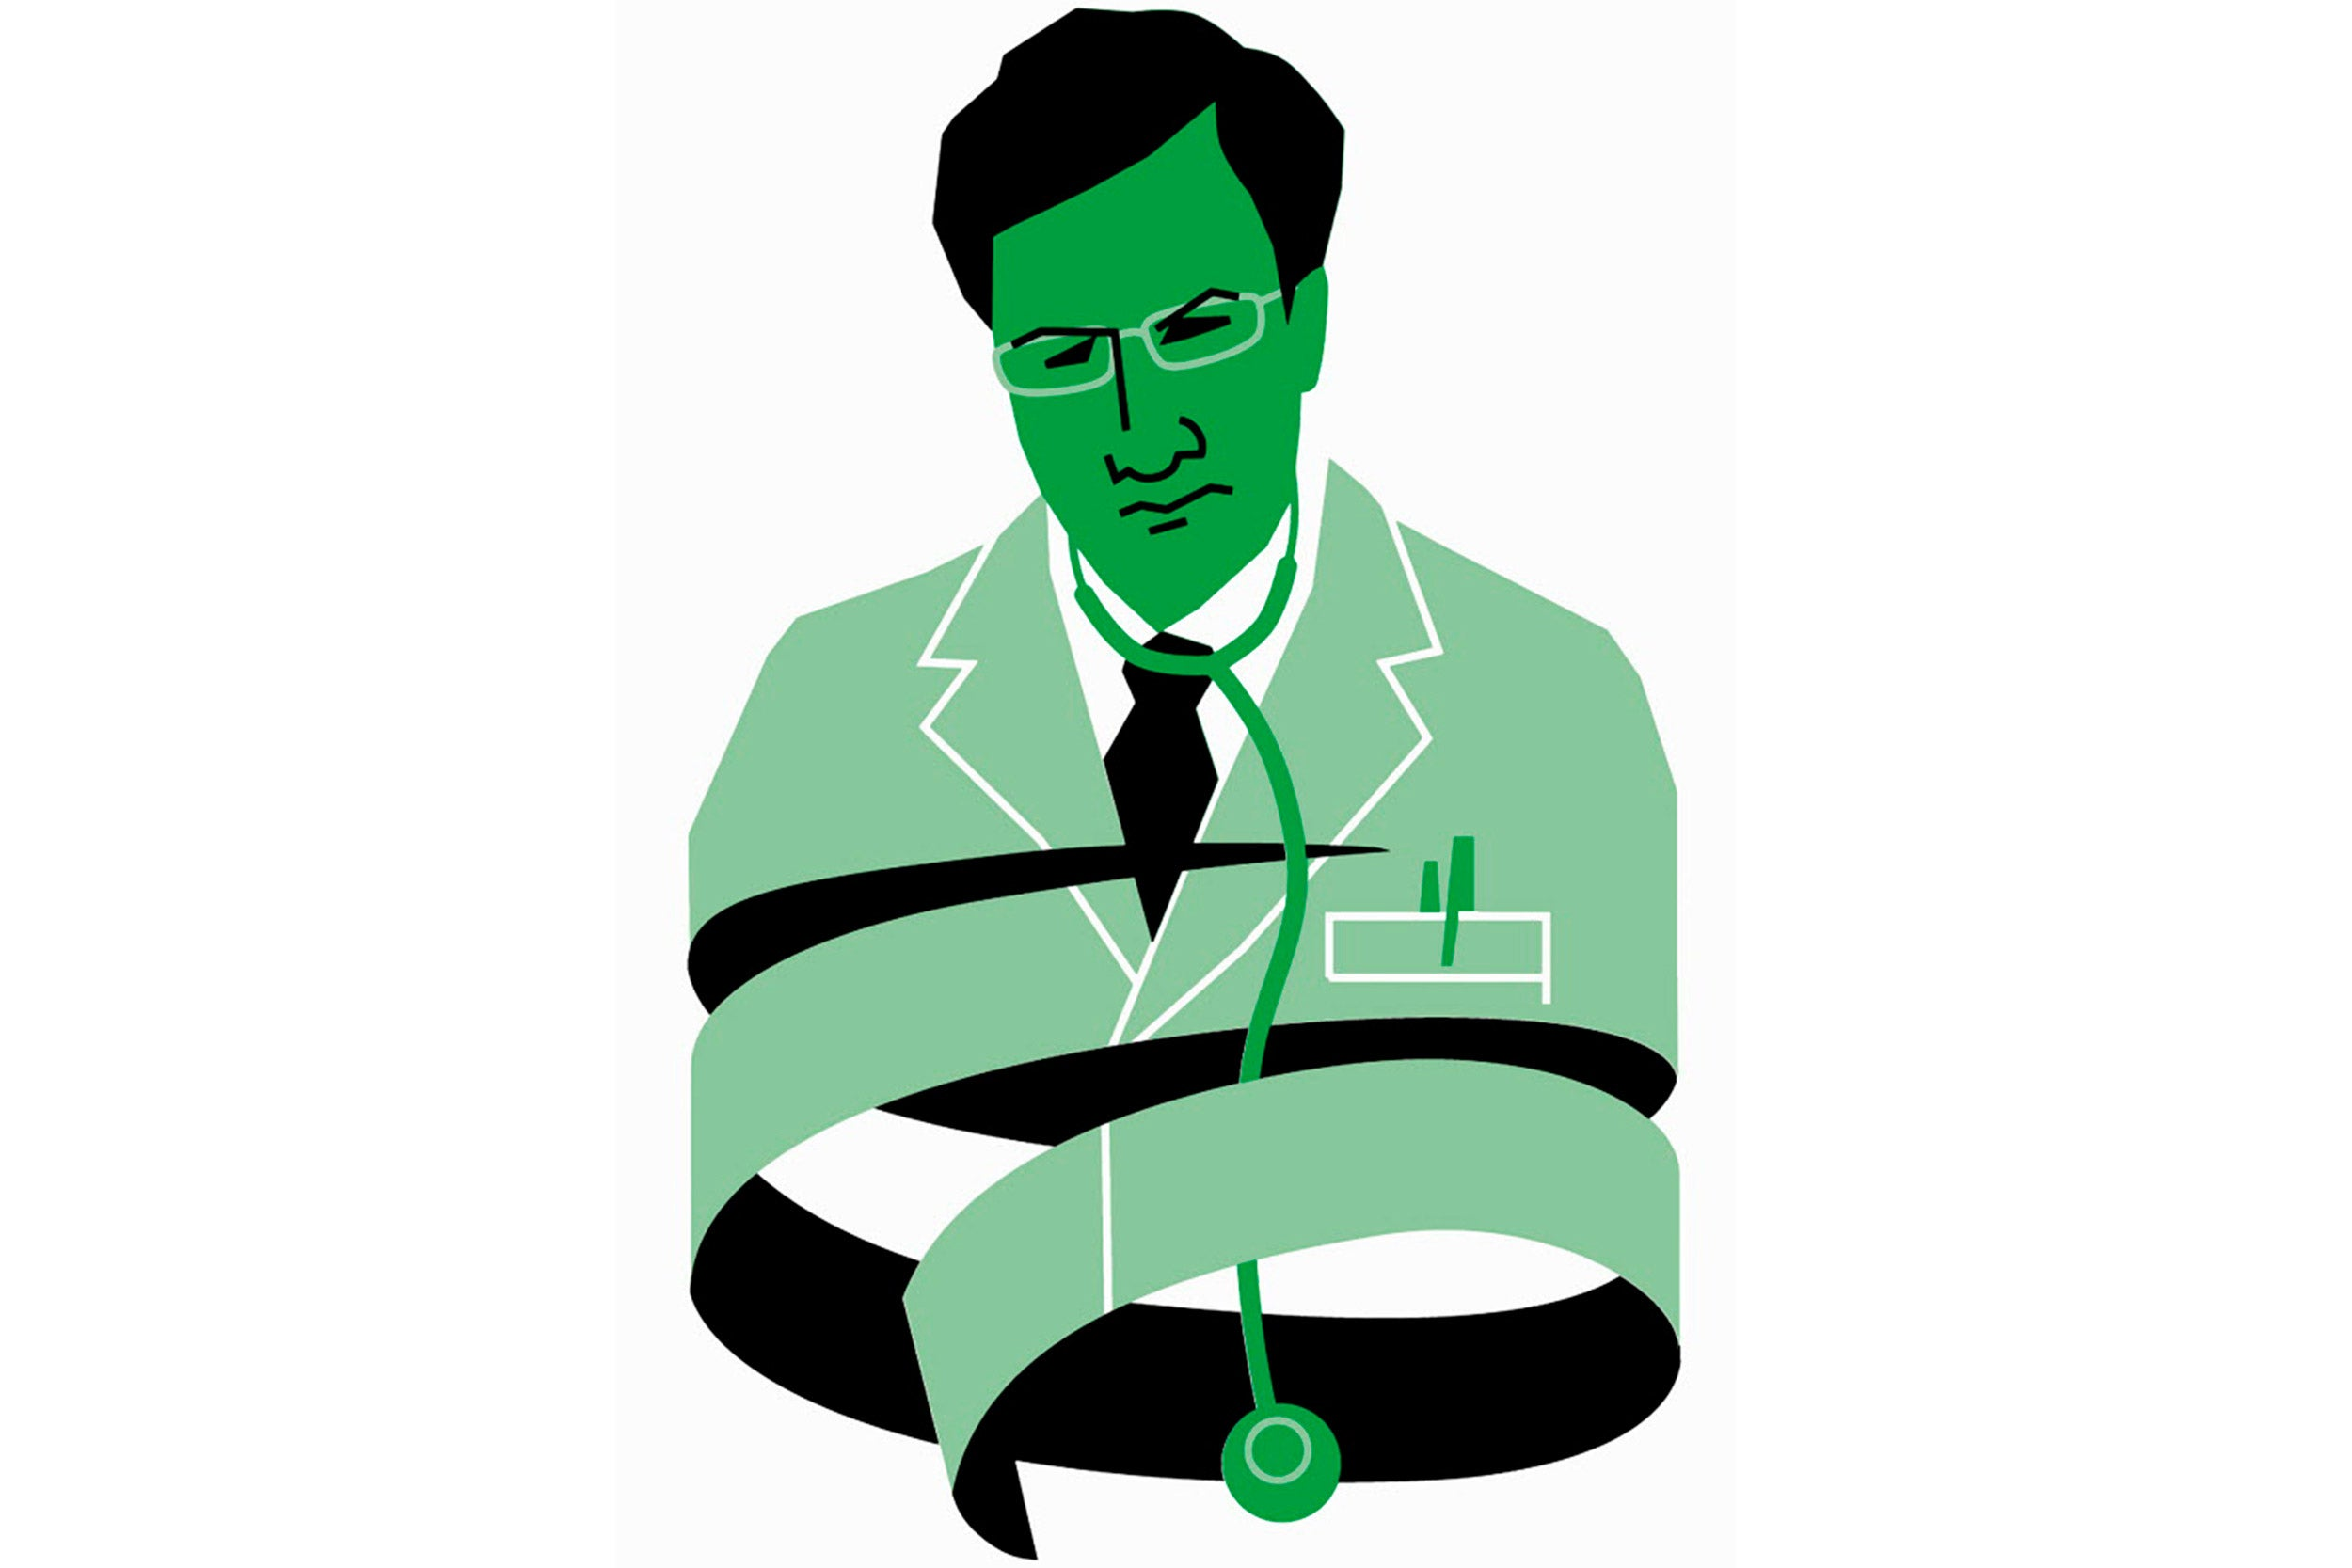 Illustration of a doctor reflecting tied up in paperwork